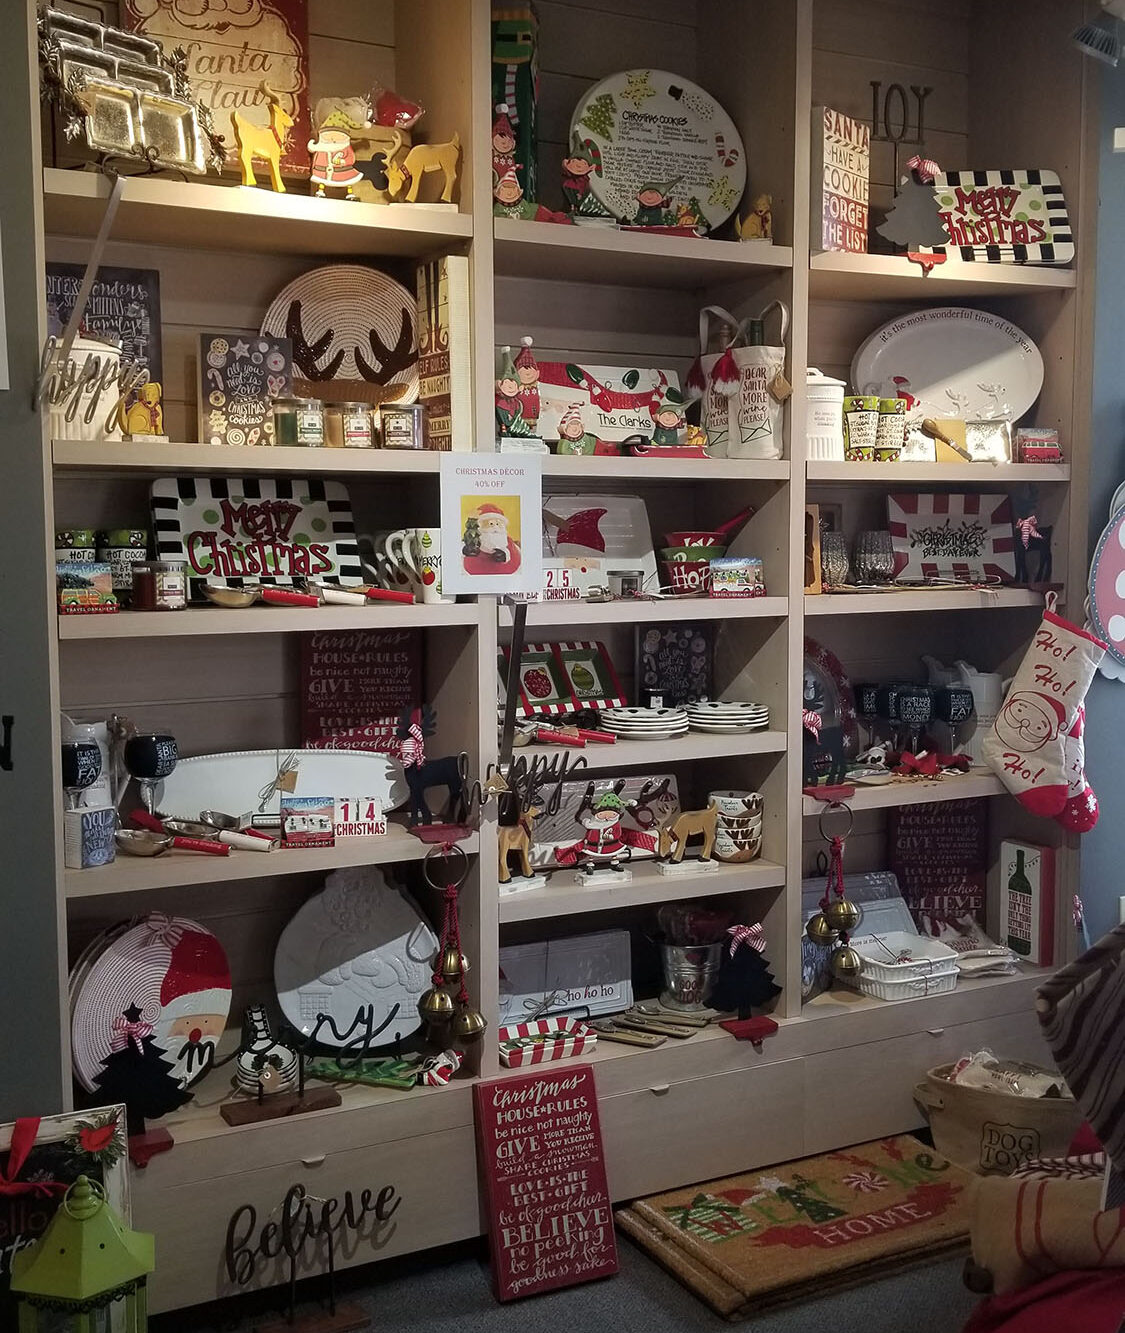 showroom display of Christmas home furnishings and decor at landscaping supply store